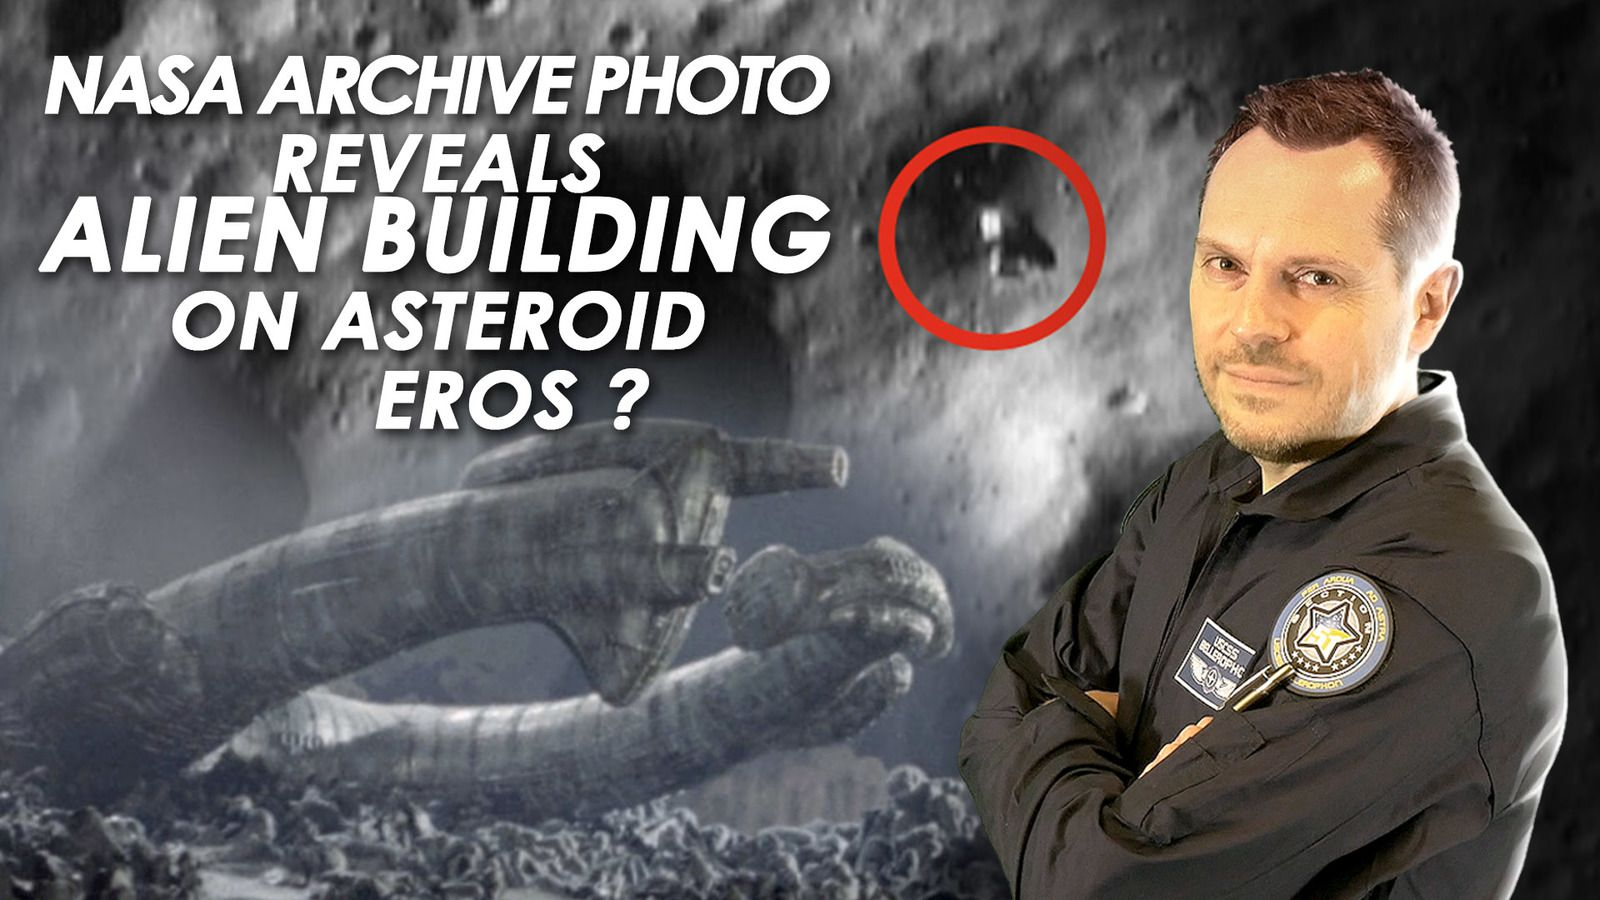 👽 NASA Archive Photo May Reveal Alien Building on Asteroid Eros